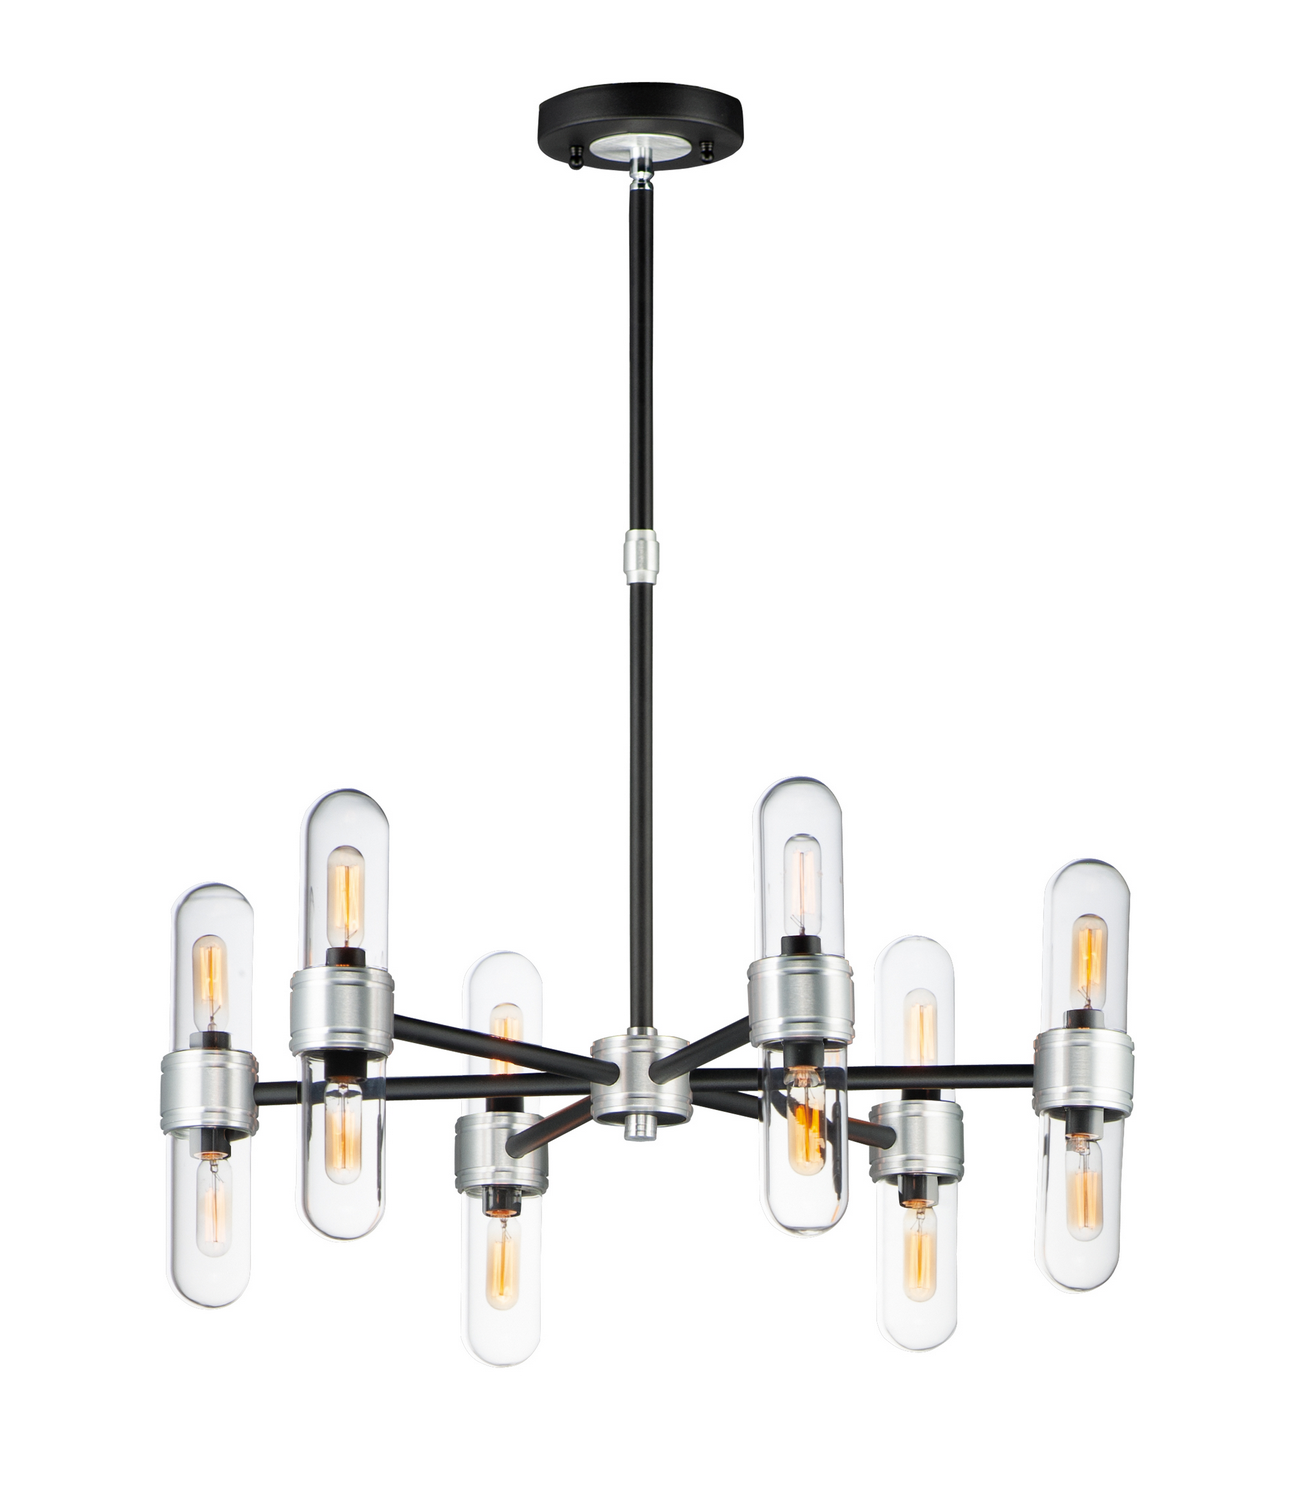 12 Light Chandelier from the Dual collection by Maxim 21706CLBKAL